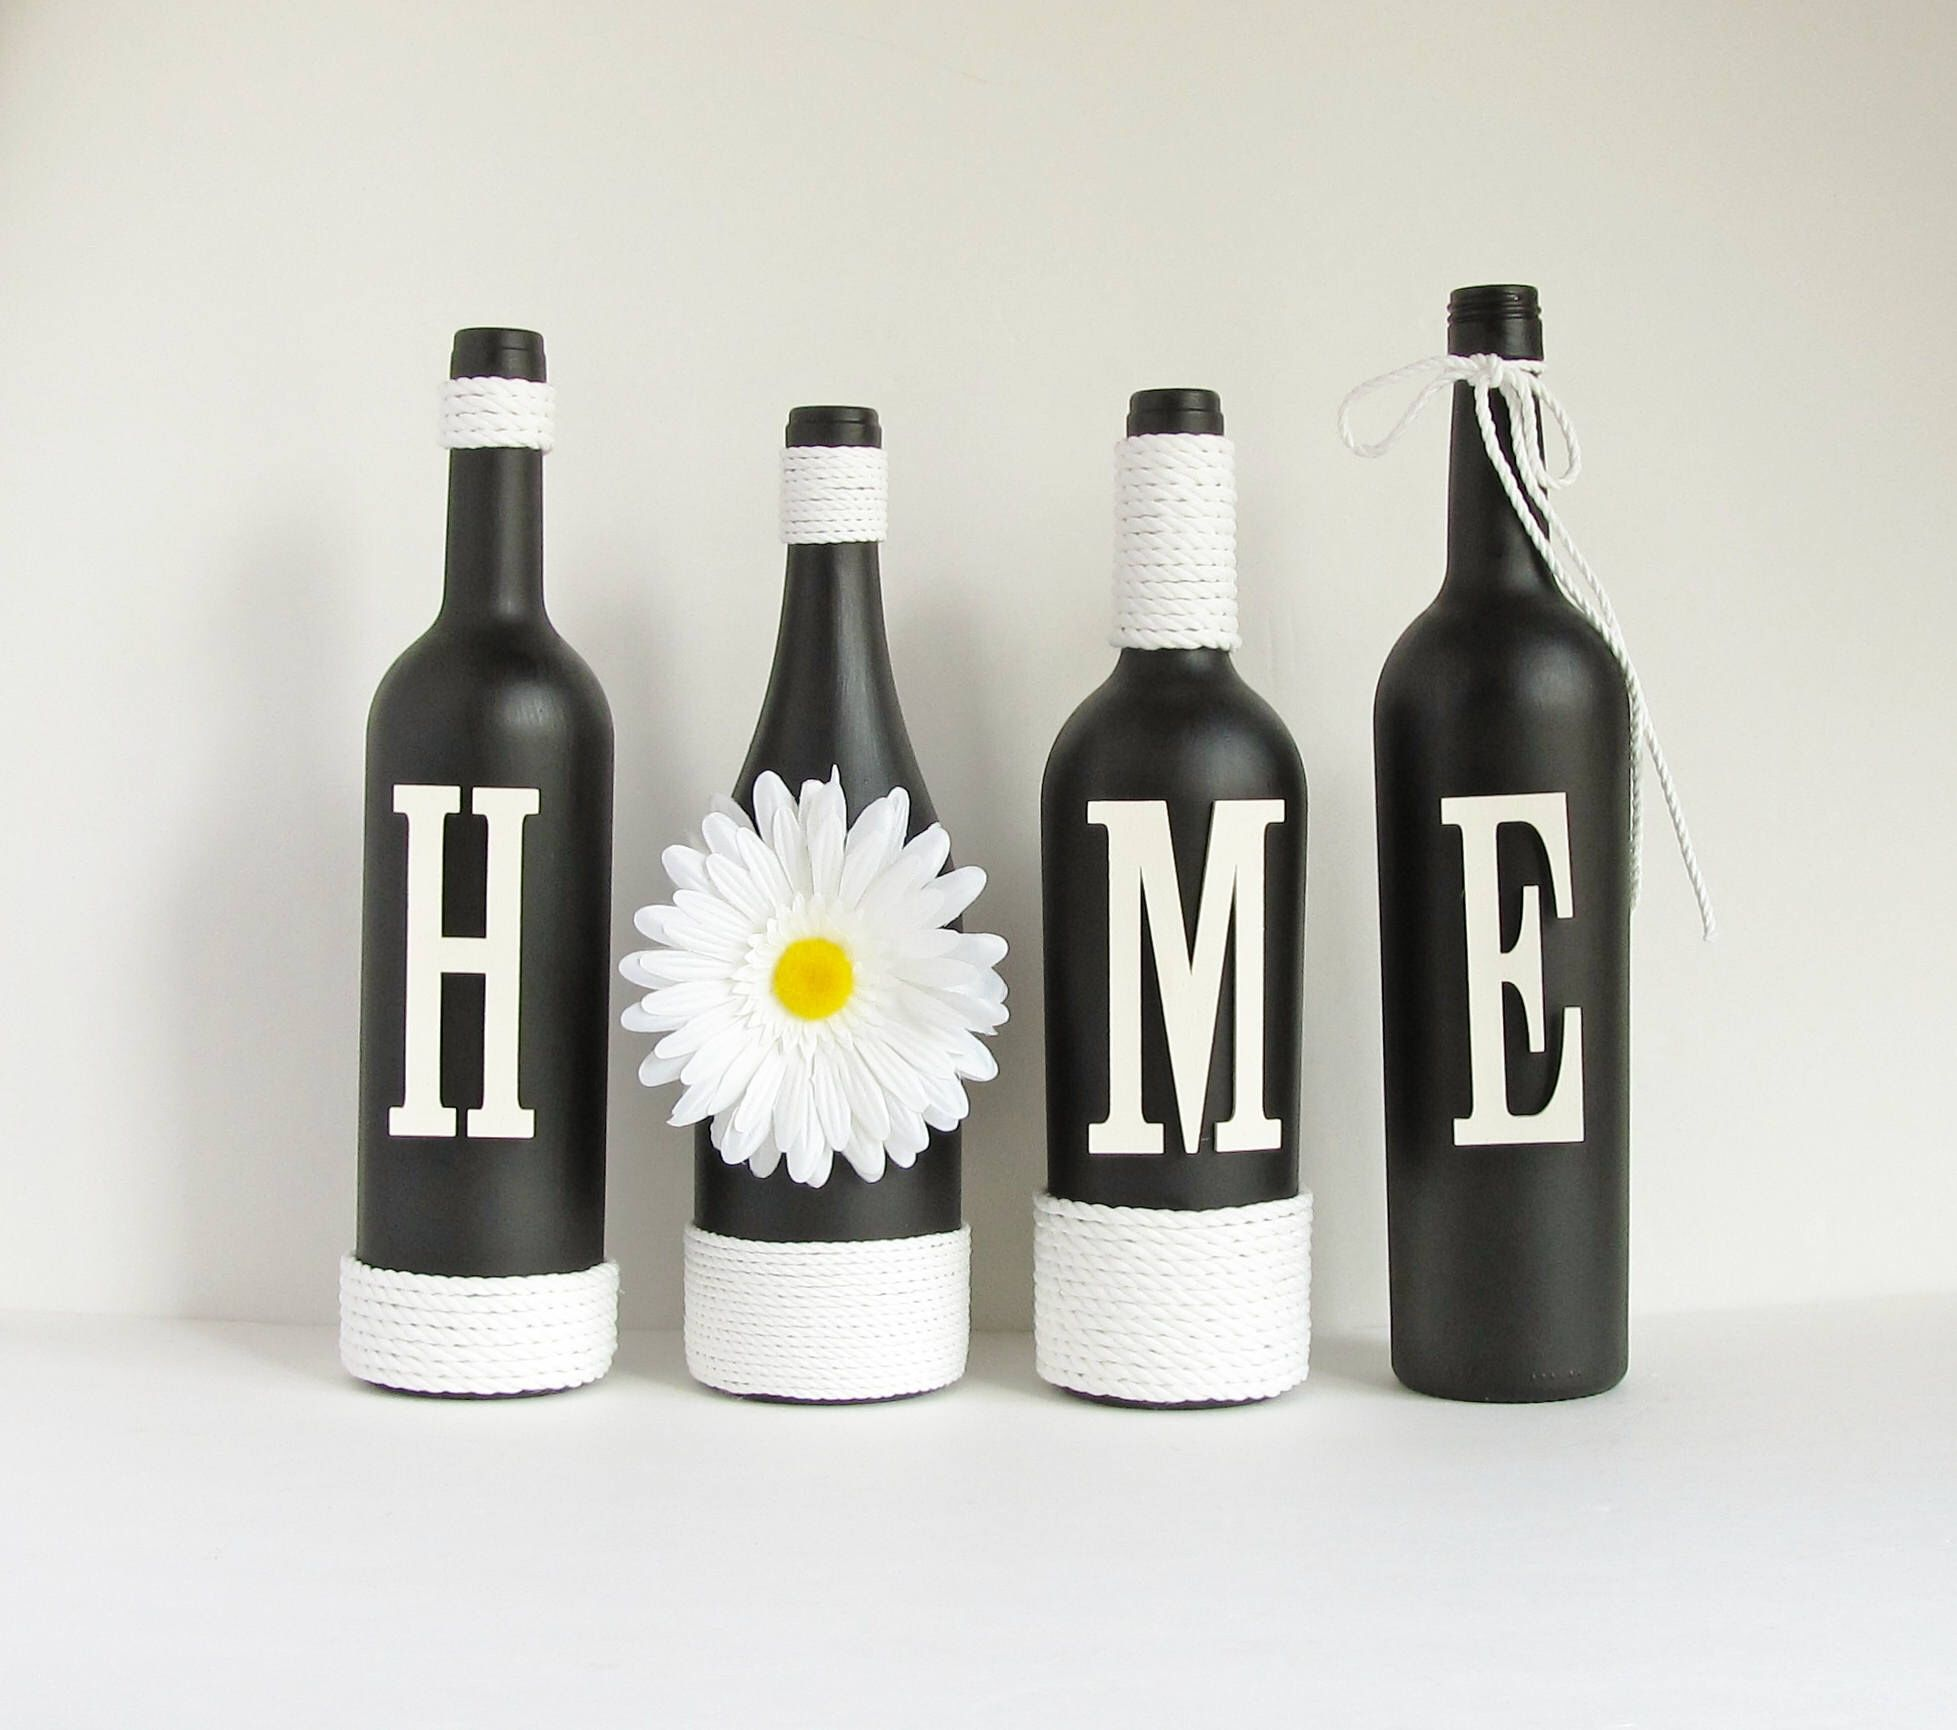 Black Home Wine Bottle Set Home Bottle Set Rustic Bottle Set